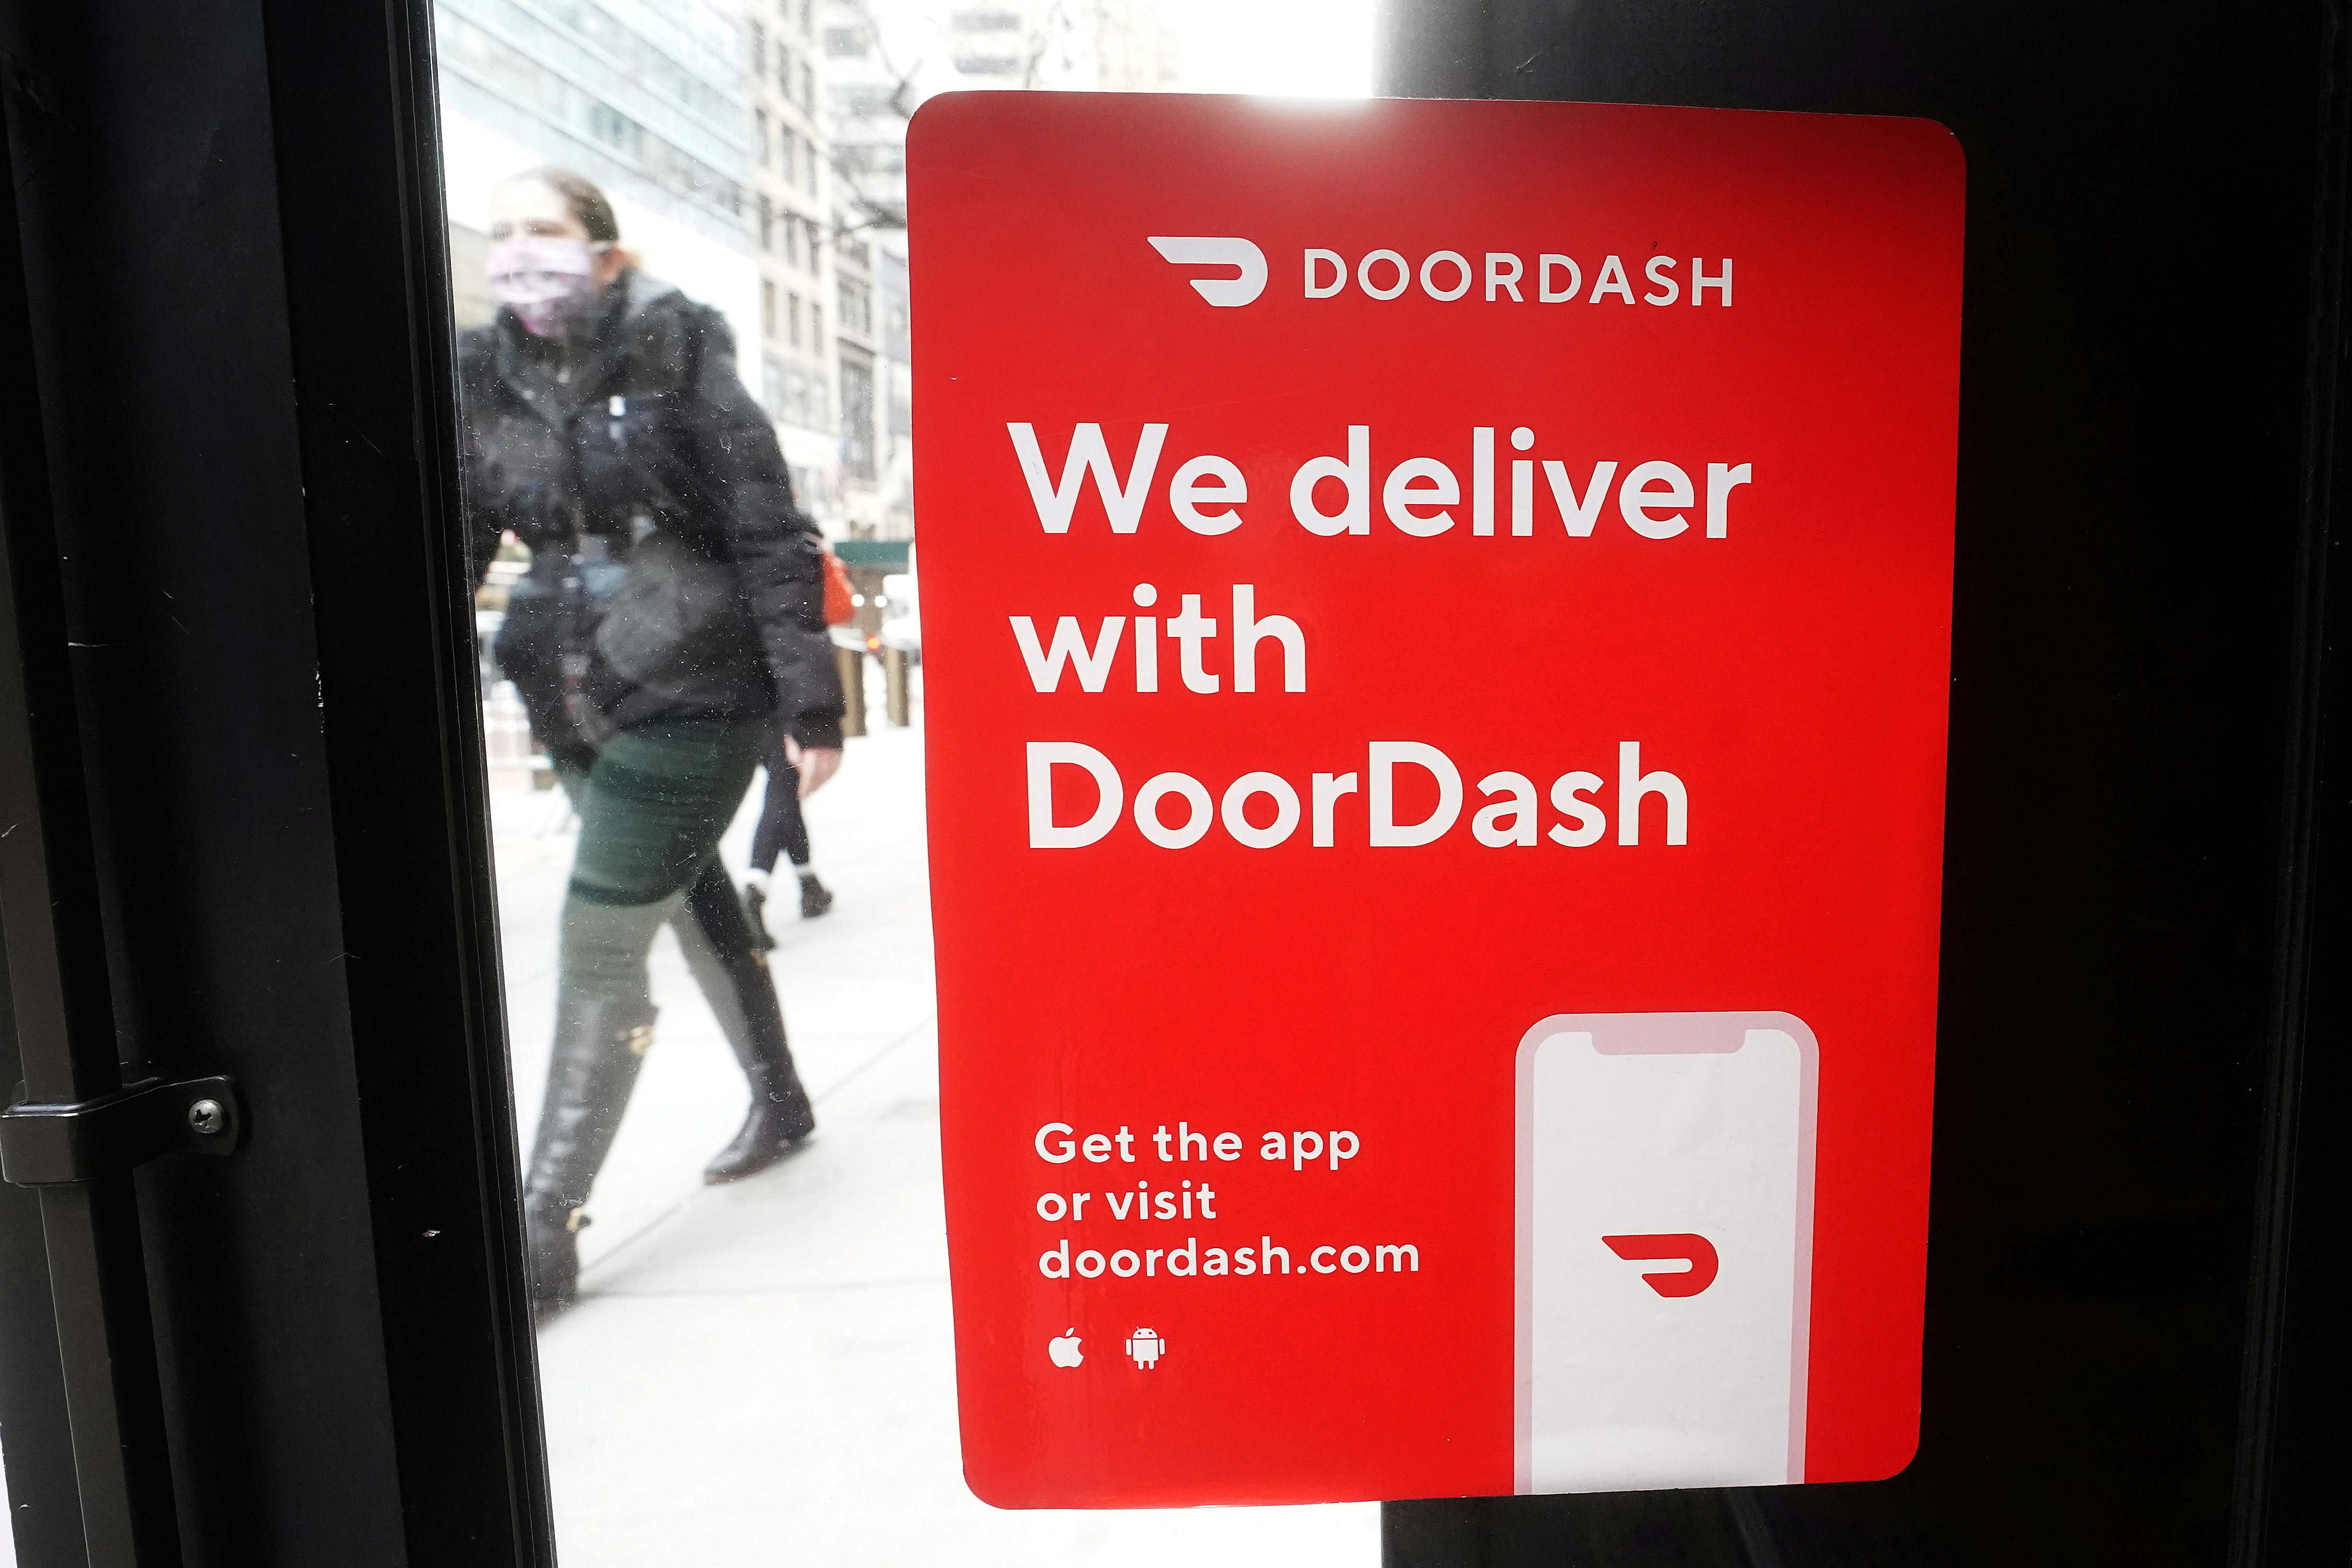 FILE PHOTO: A DoorDash sign is pictured on a restaurant in the Manhattan borough of New York City, New York, U.S., December 9, 2020. REUTERS/Carlo Allegri